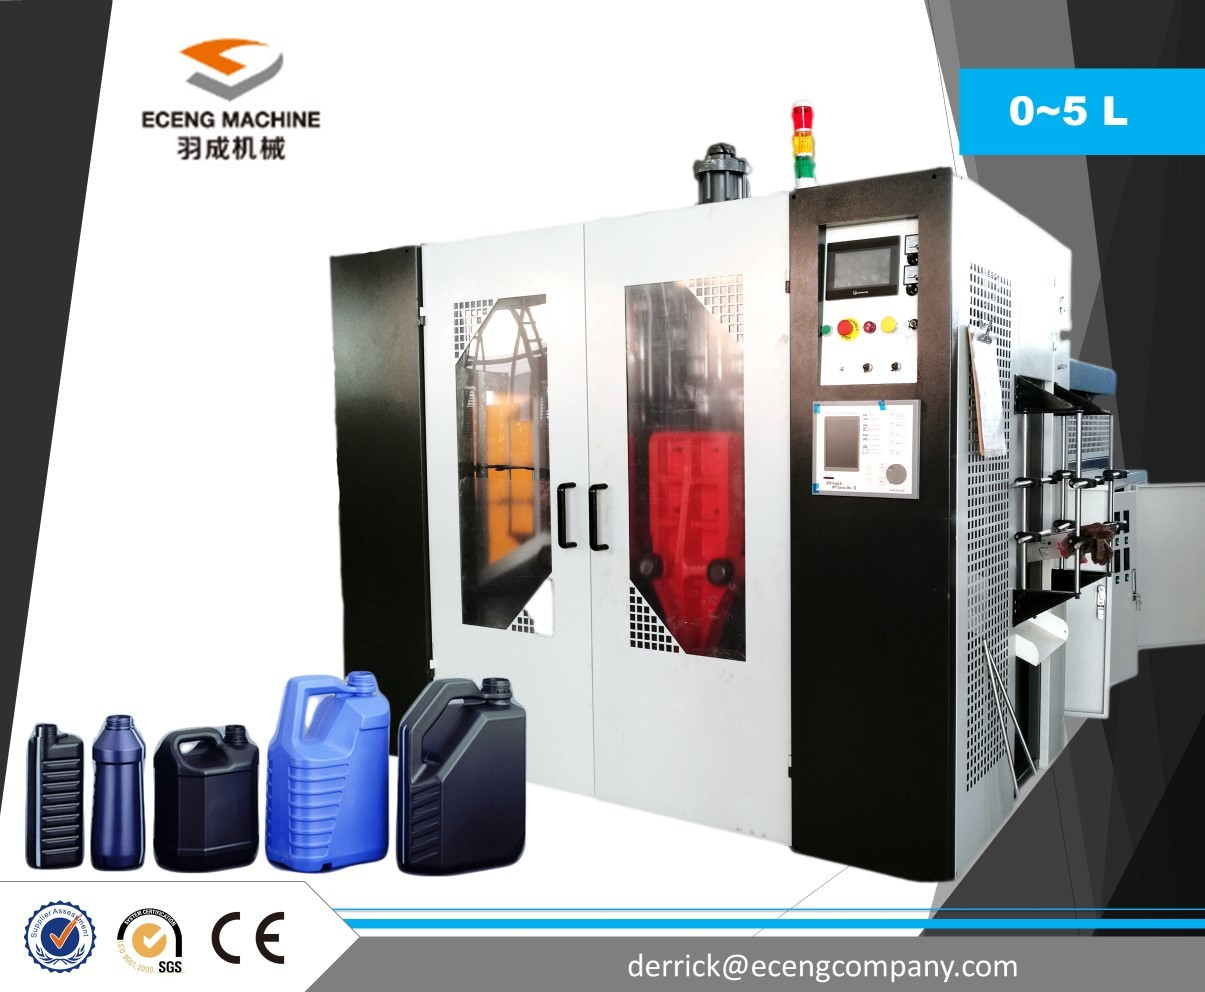 5 L PLC Control Extrusion Molding Machine With Automatic Temperature Control